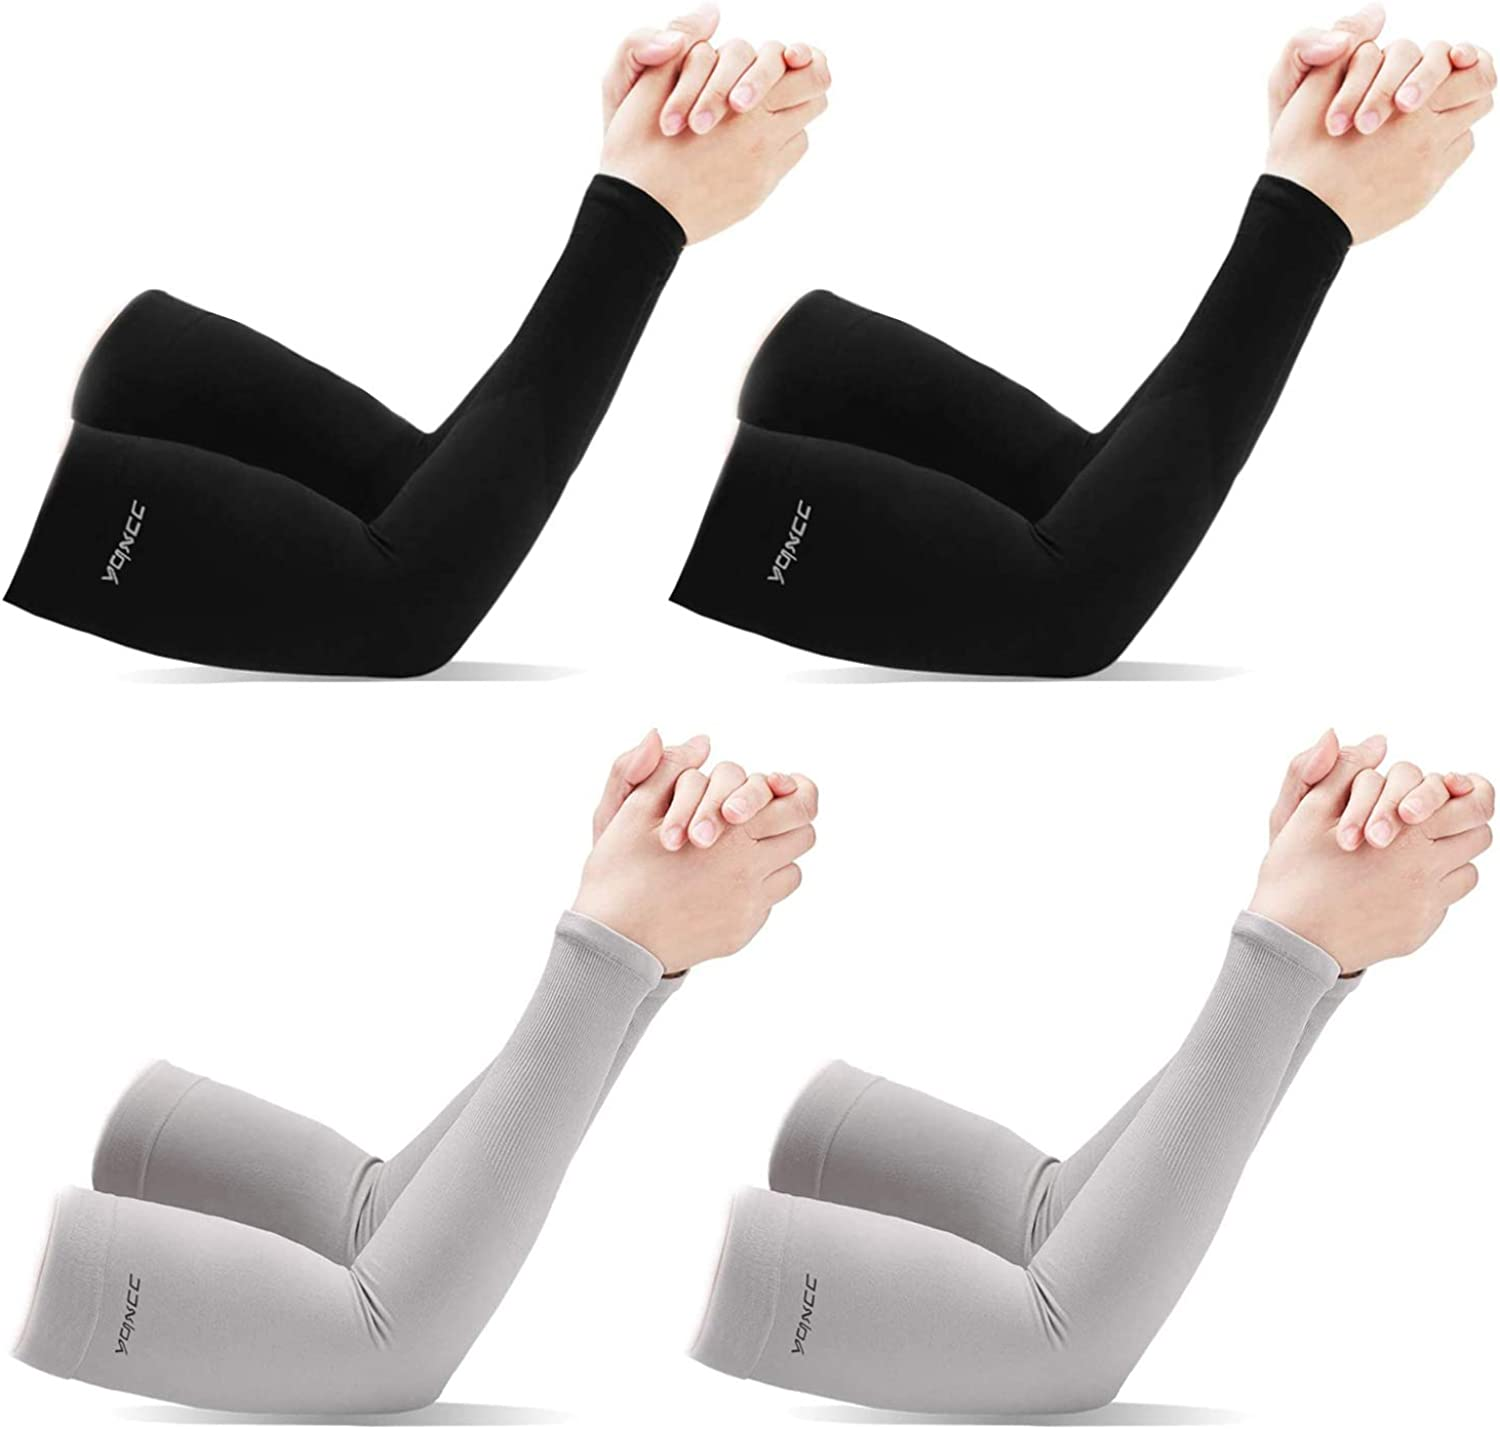 YQXCC Arm Sleeves for Men Women to Cover UV Sun Protection for Outdoor Sports